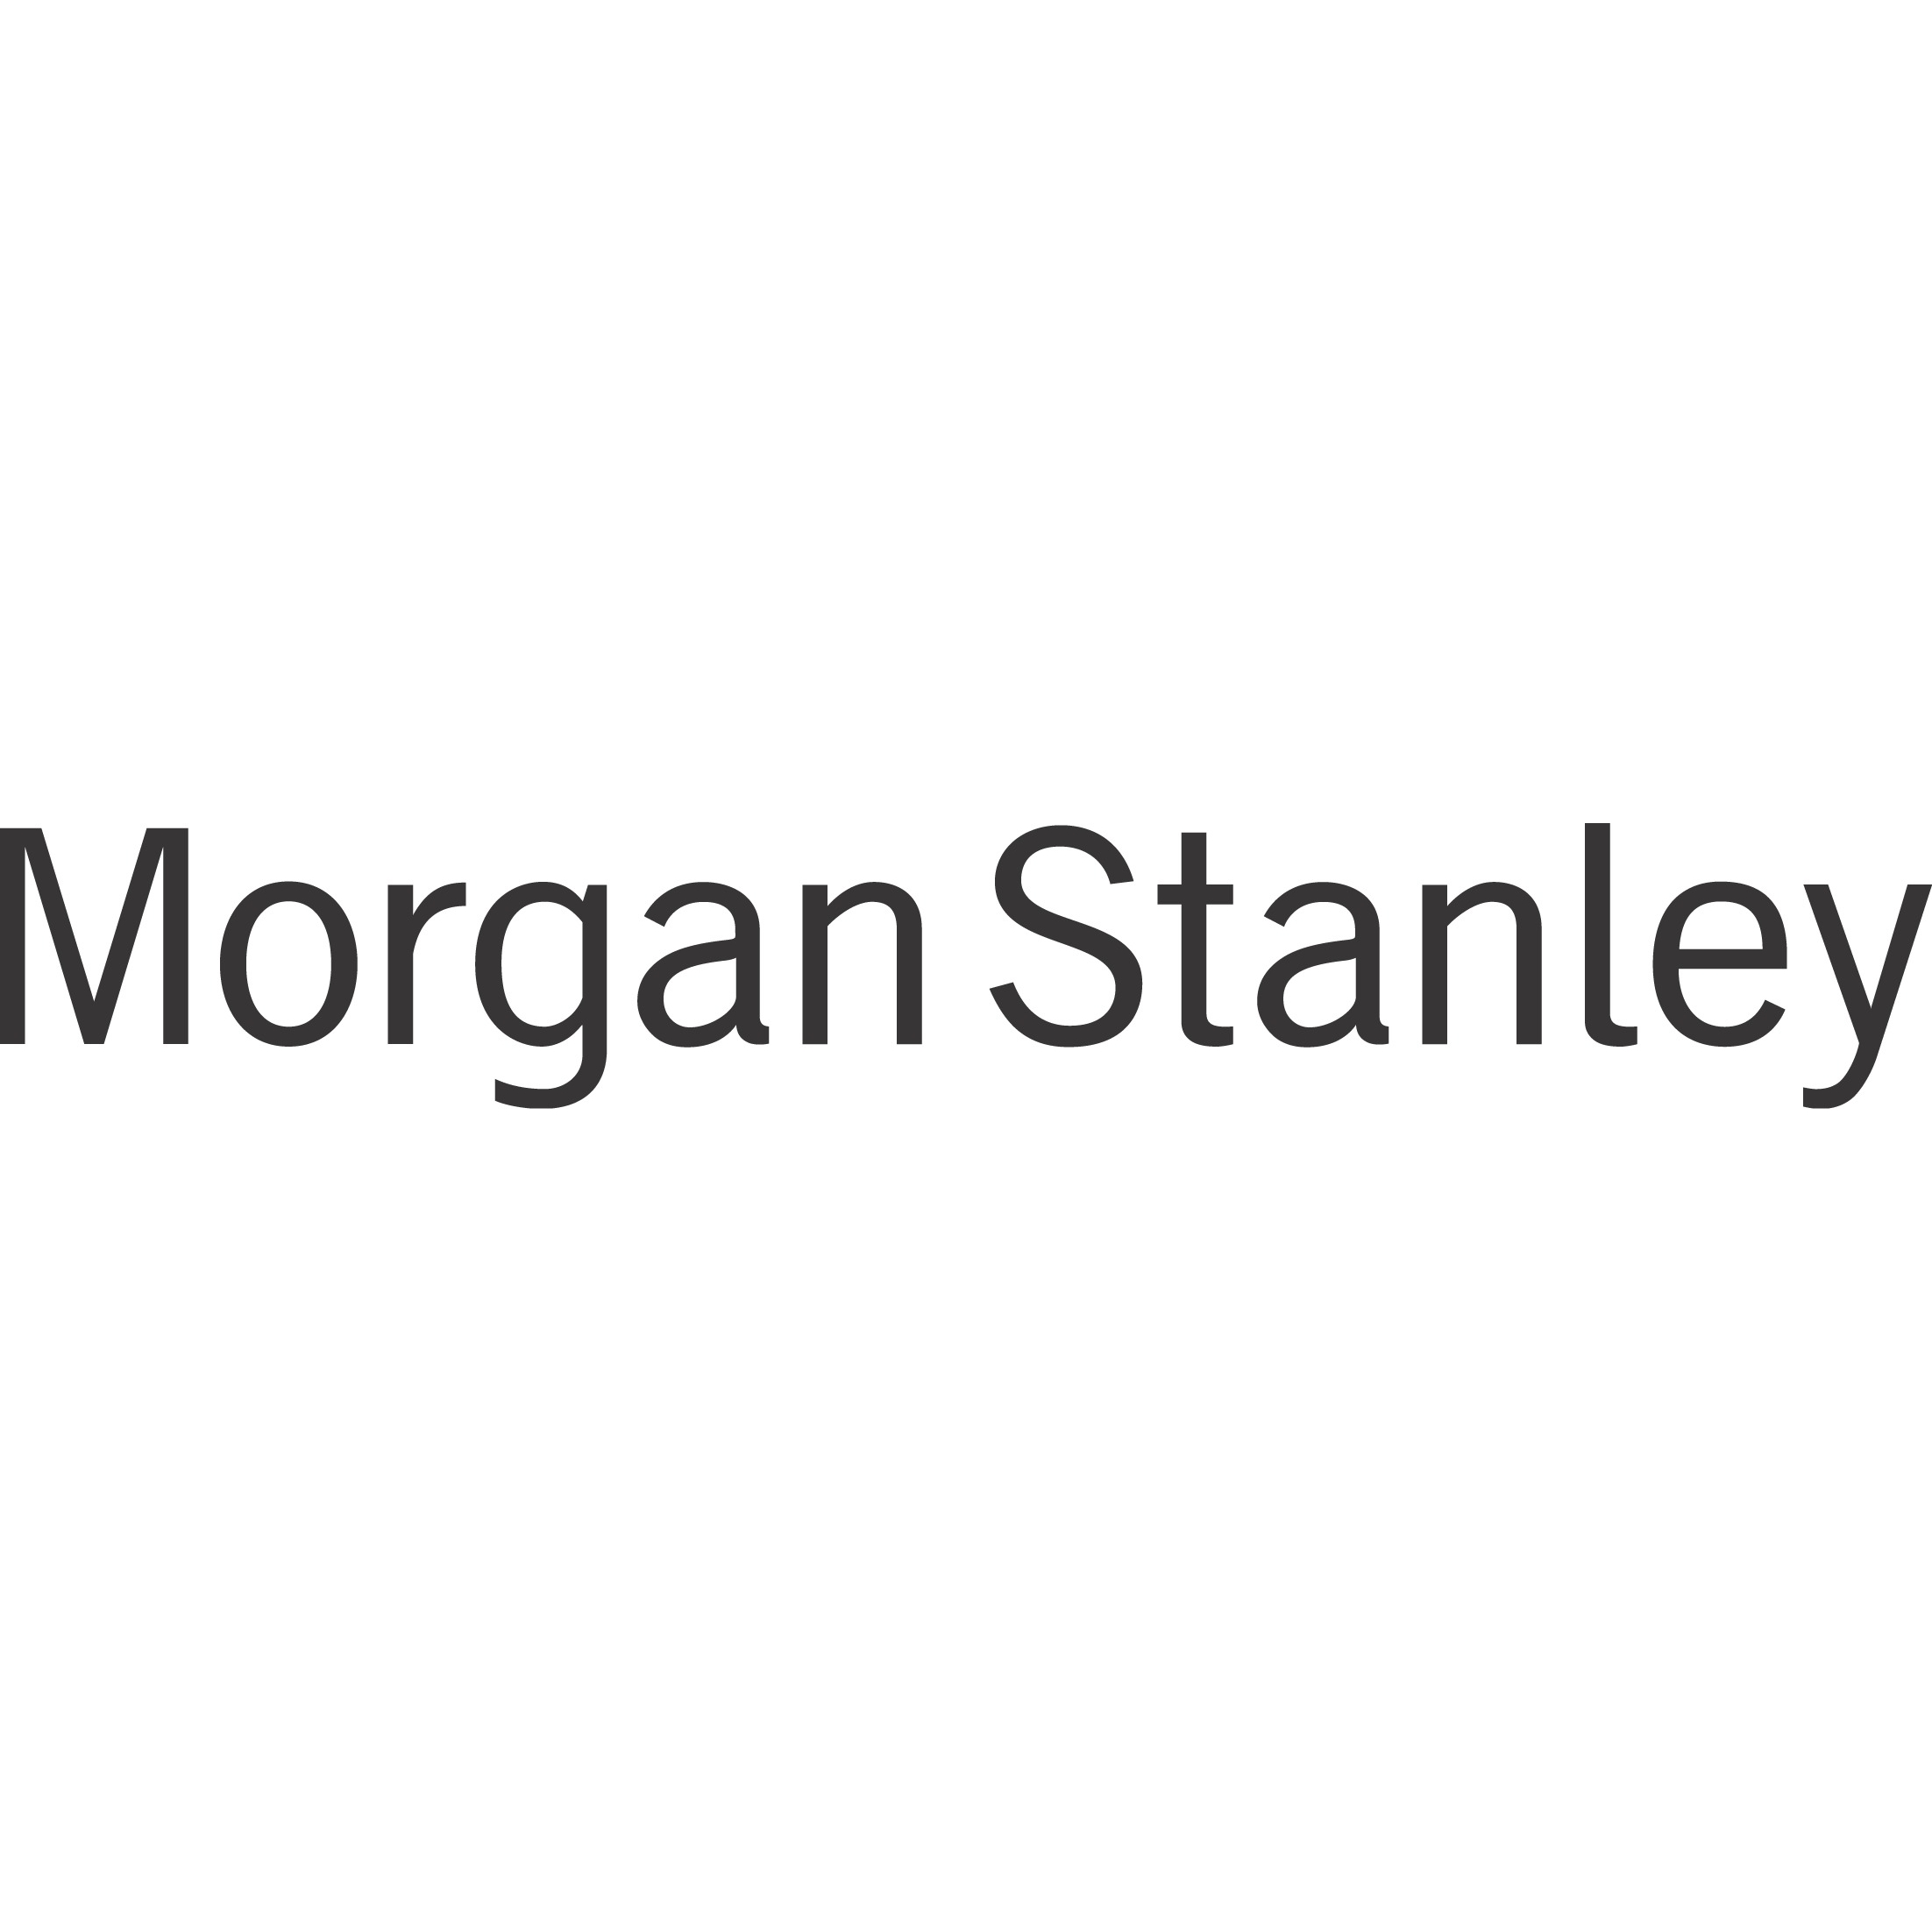 Cherie A Bond - Morgan Stanley